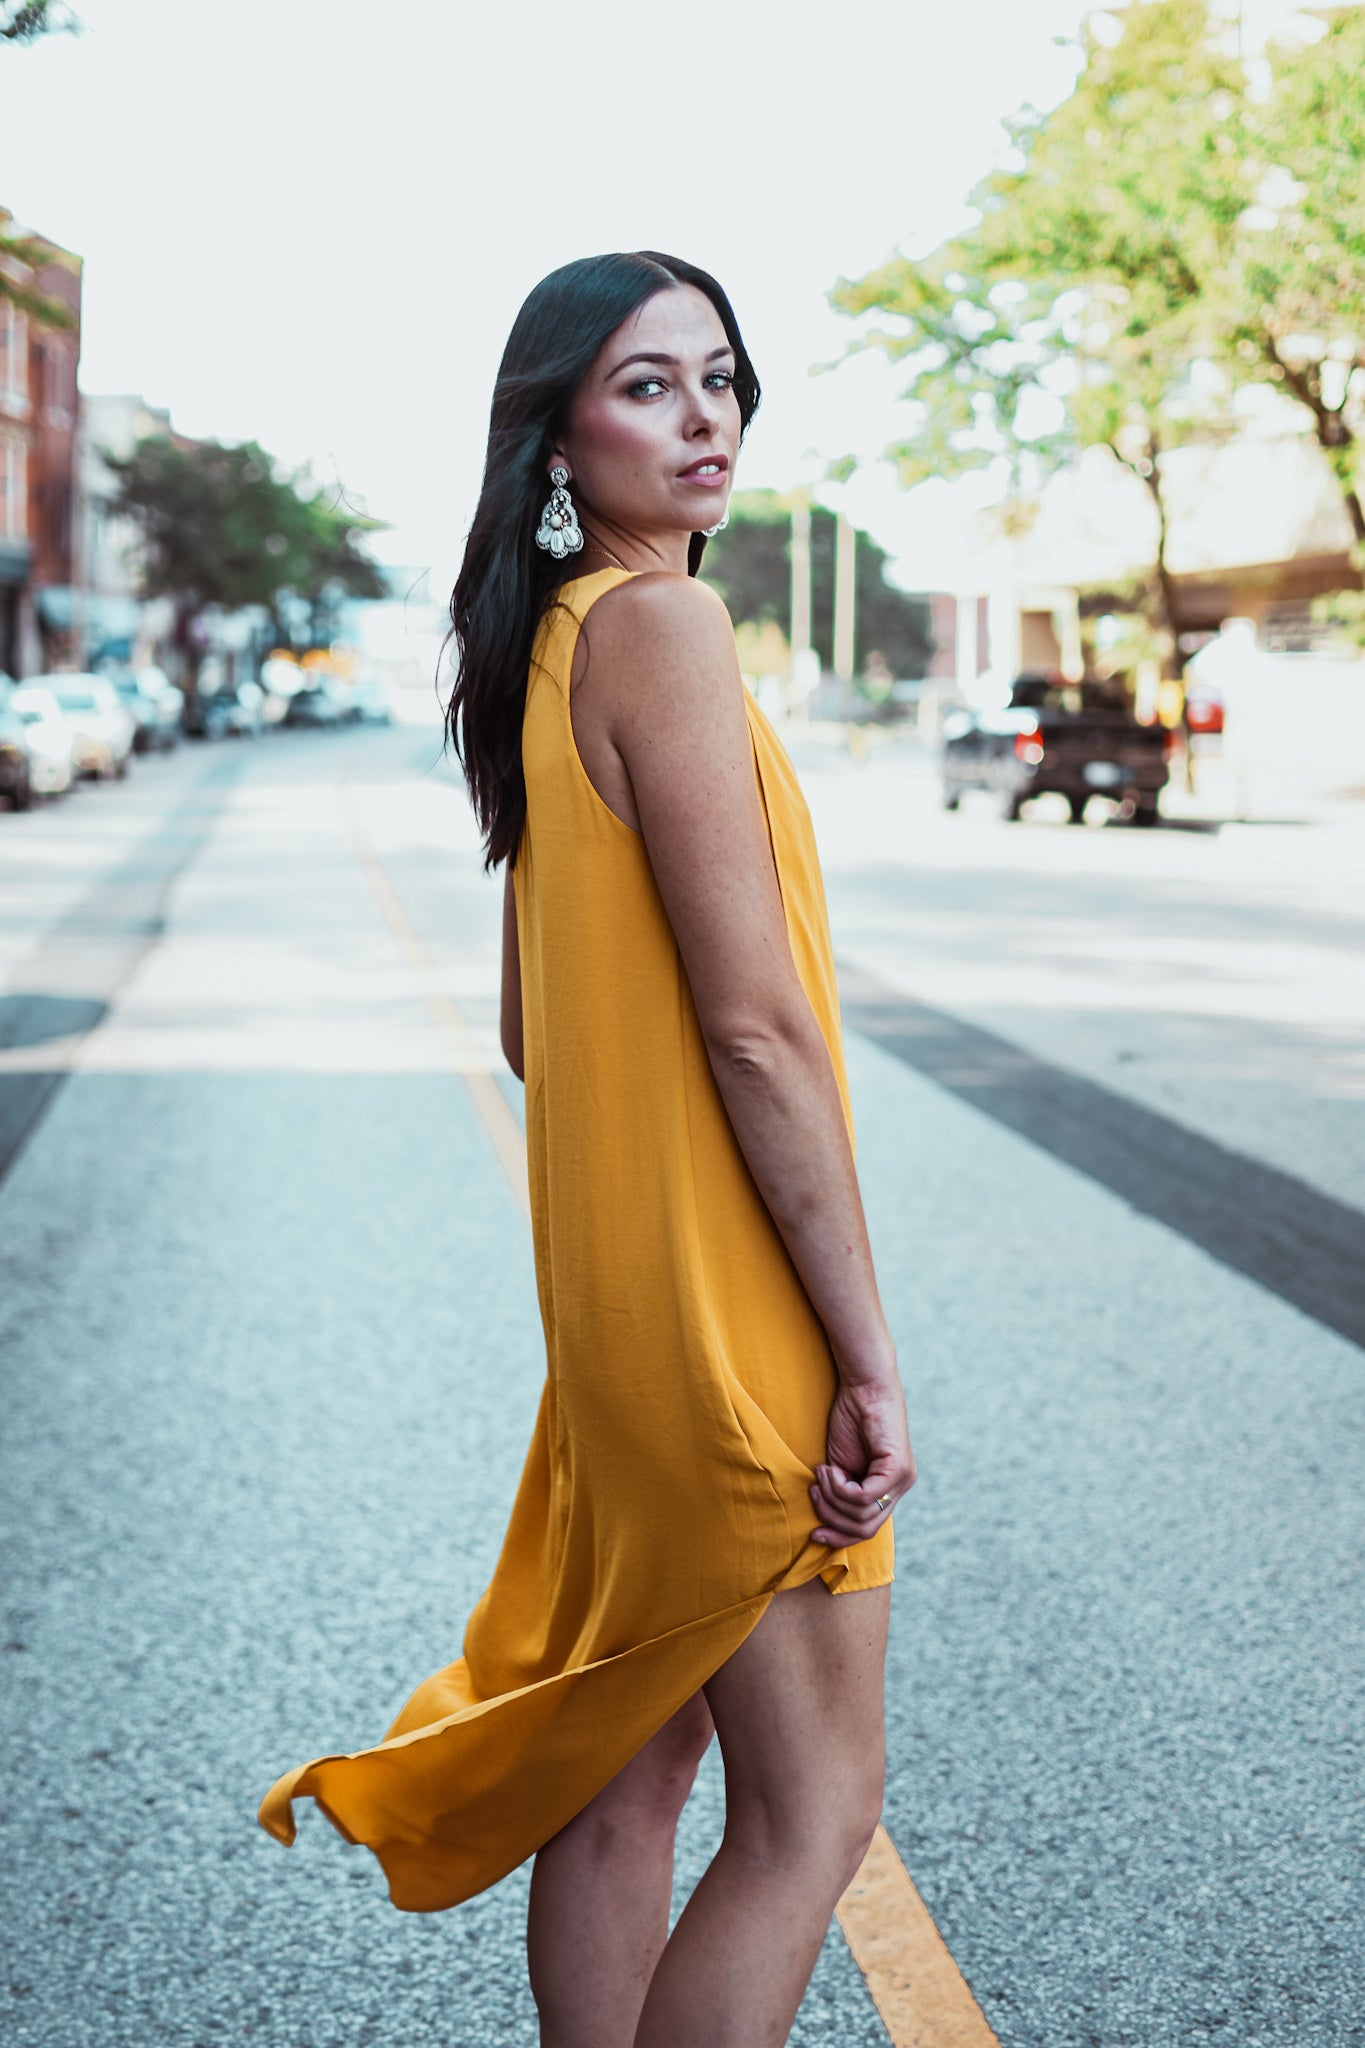 Panorama Asymmetric Crepe High-Low Dress in Mustard Yellow / FINAL SALE